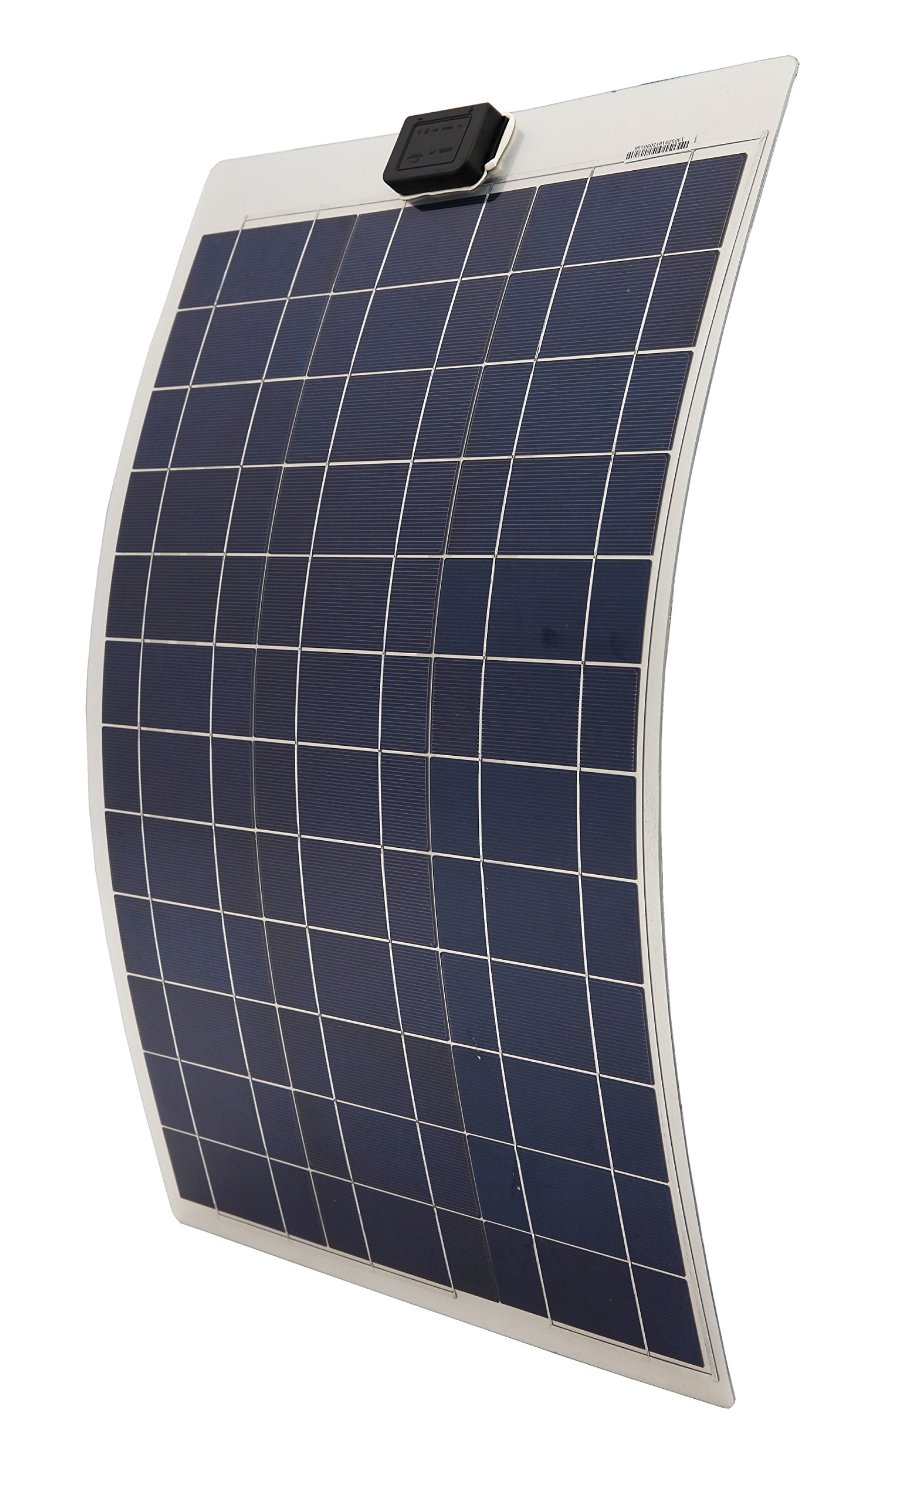 DE stock,50W poly semi-flexible solar panel, 50 watt flexible solar panel for yacht boat RV sp 36 120w 12v semi flexible monocrystalline solar panel waterproof high conversion efficiency for rv boat car 1 5m cable